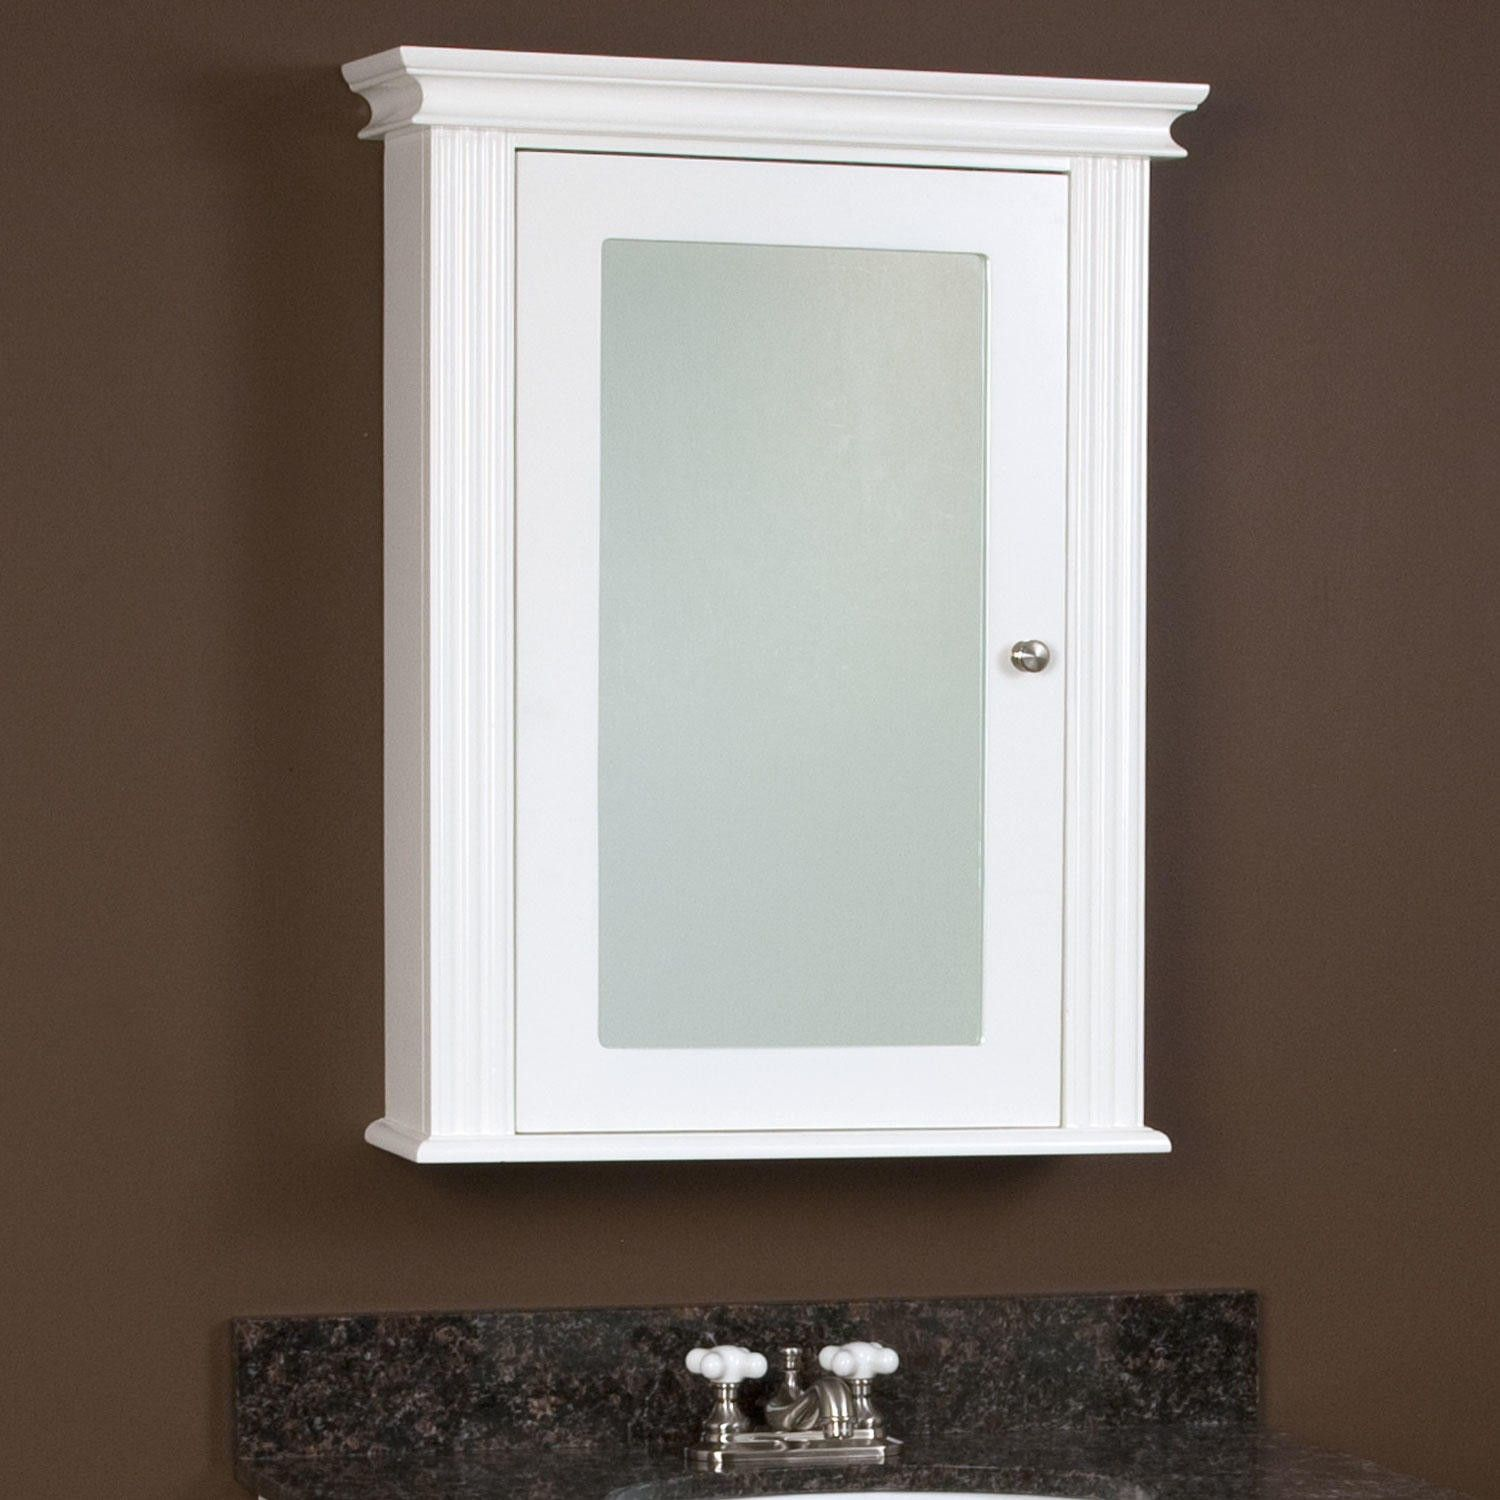 Attrayant 2019 Lowes Bathroom Medicine Cabinets   Remodeling Ideas For Kitchens Check  More At Http:/